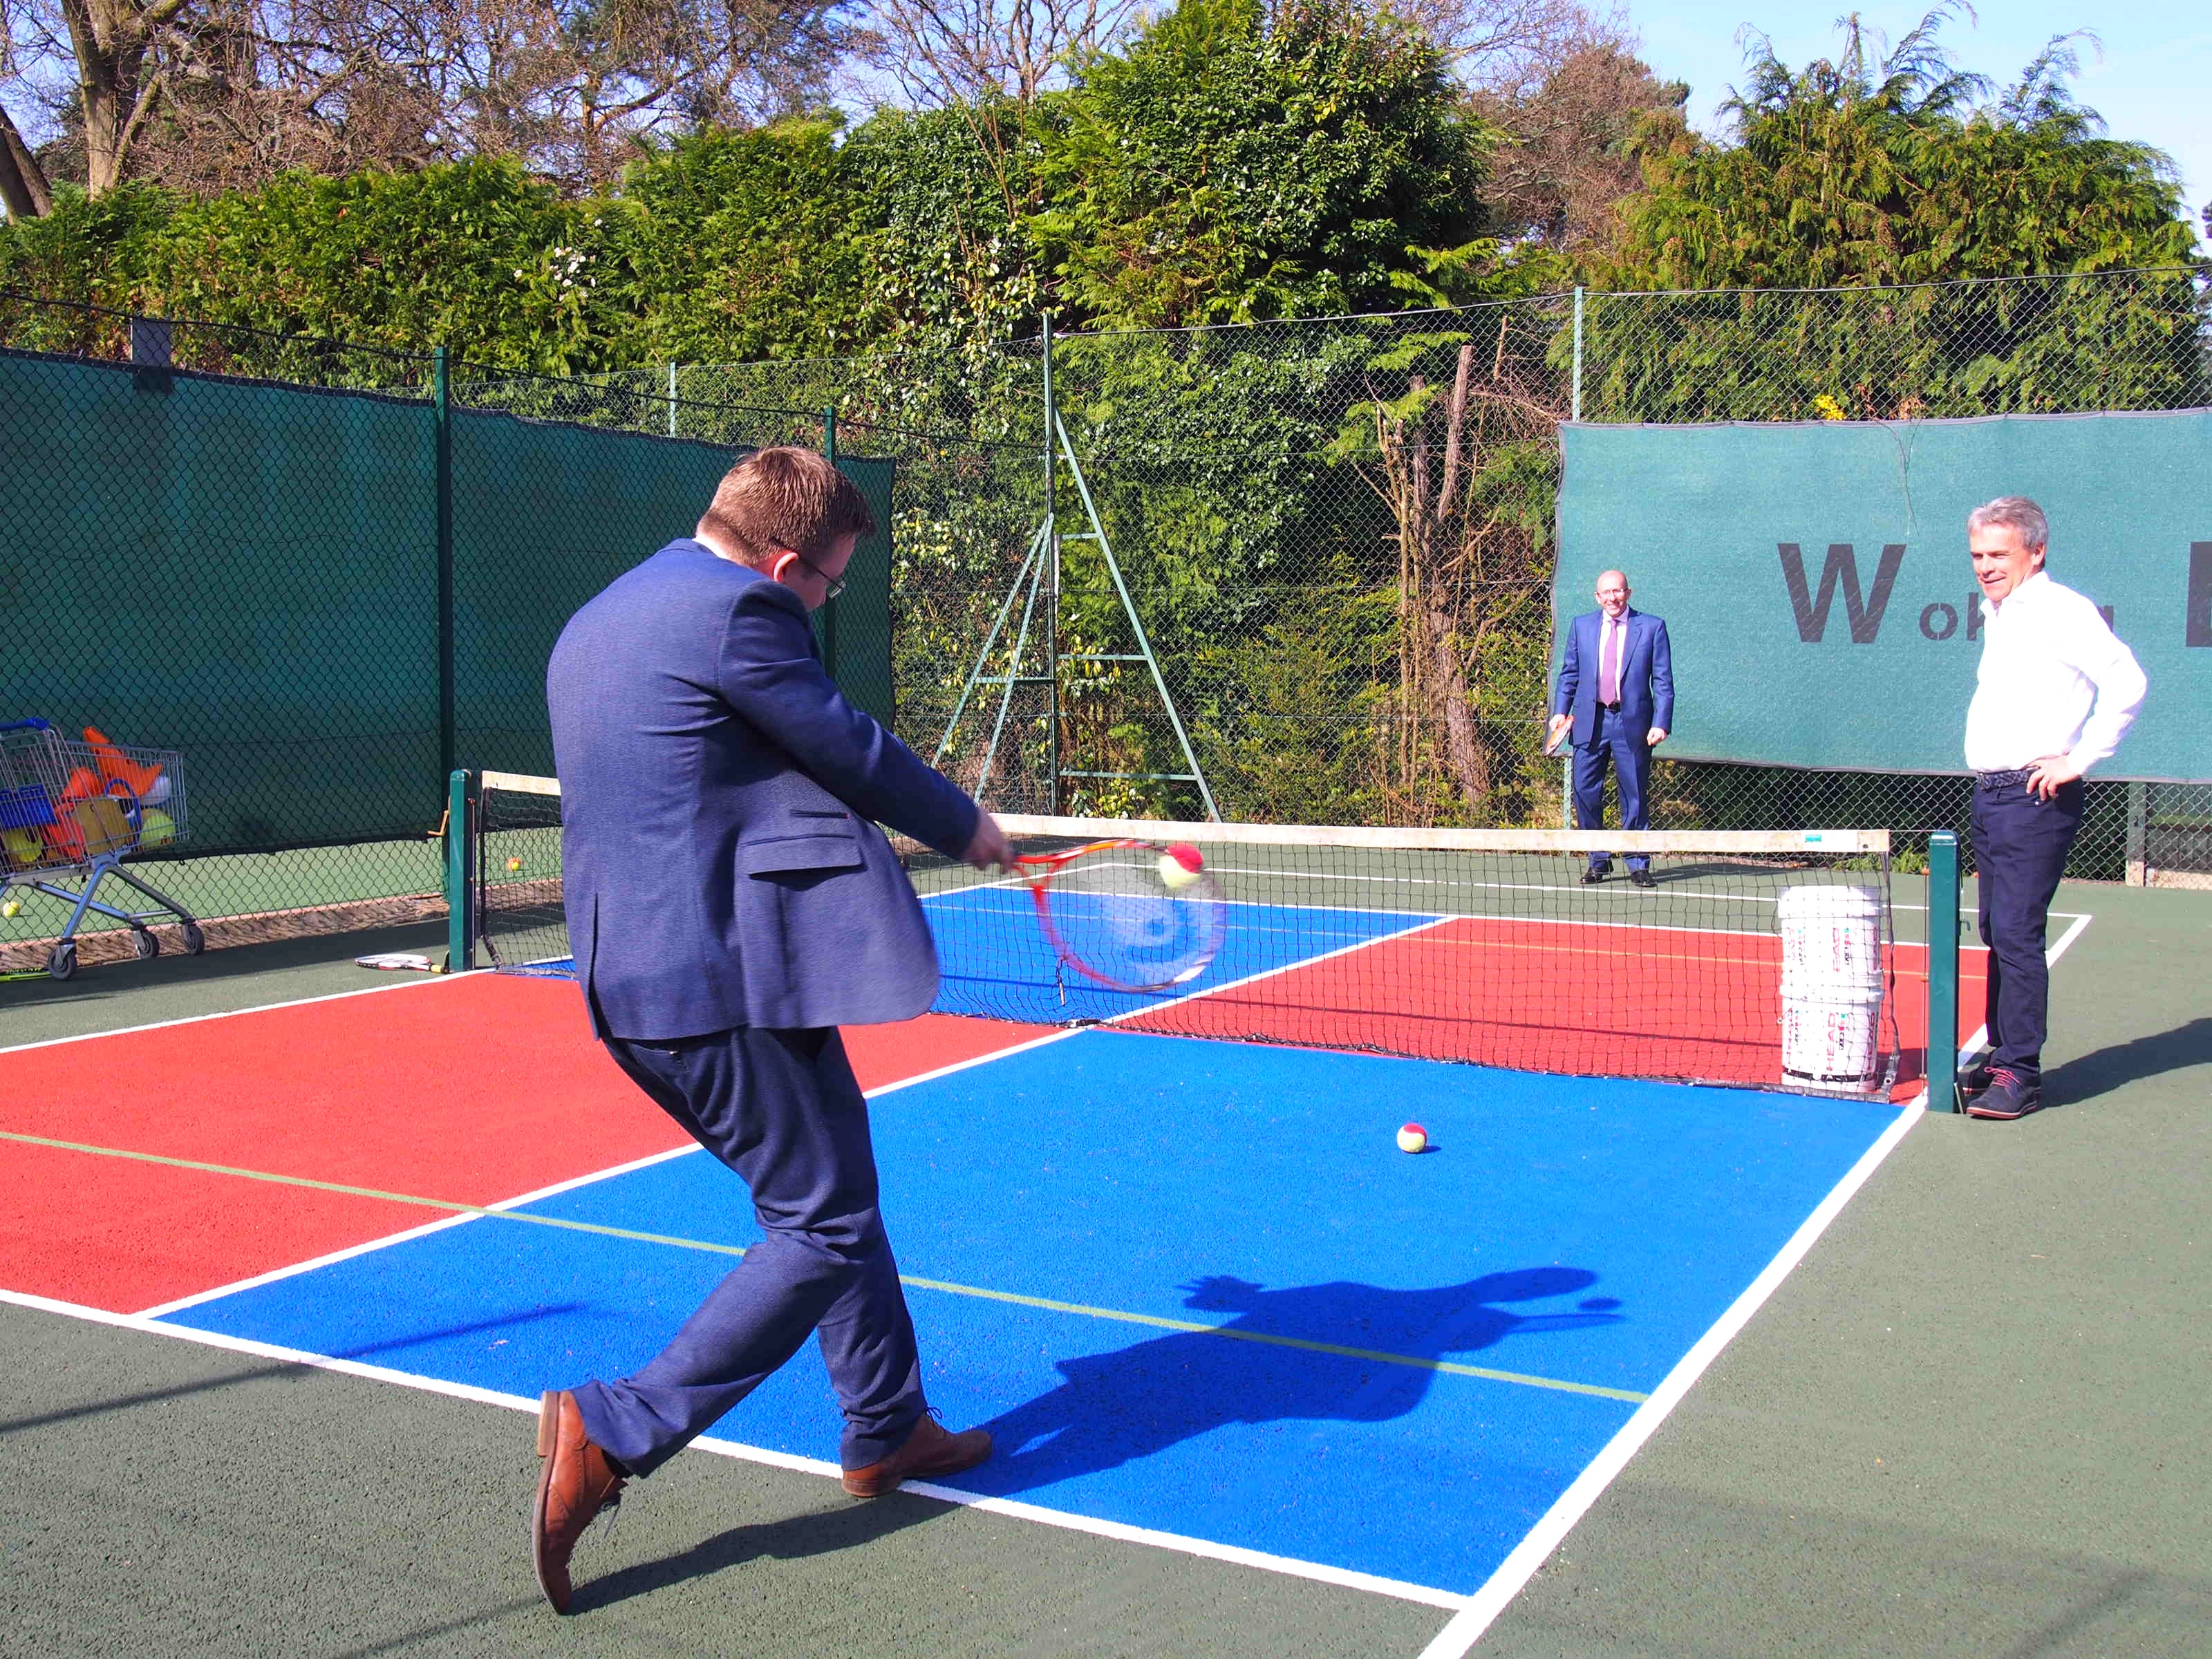 Prestige Homes In Partnership With Woking Lawn Tennis & Croquet Club